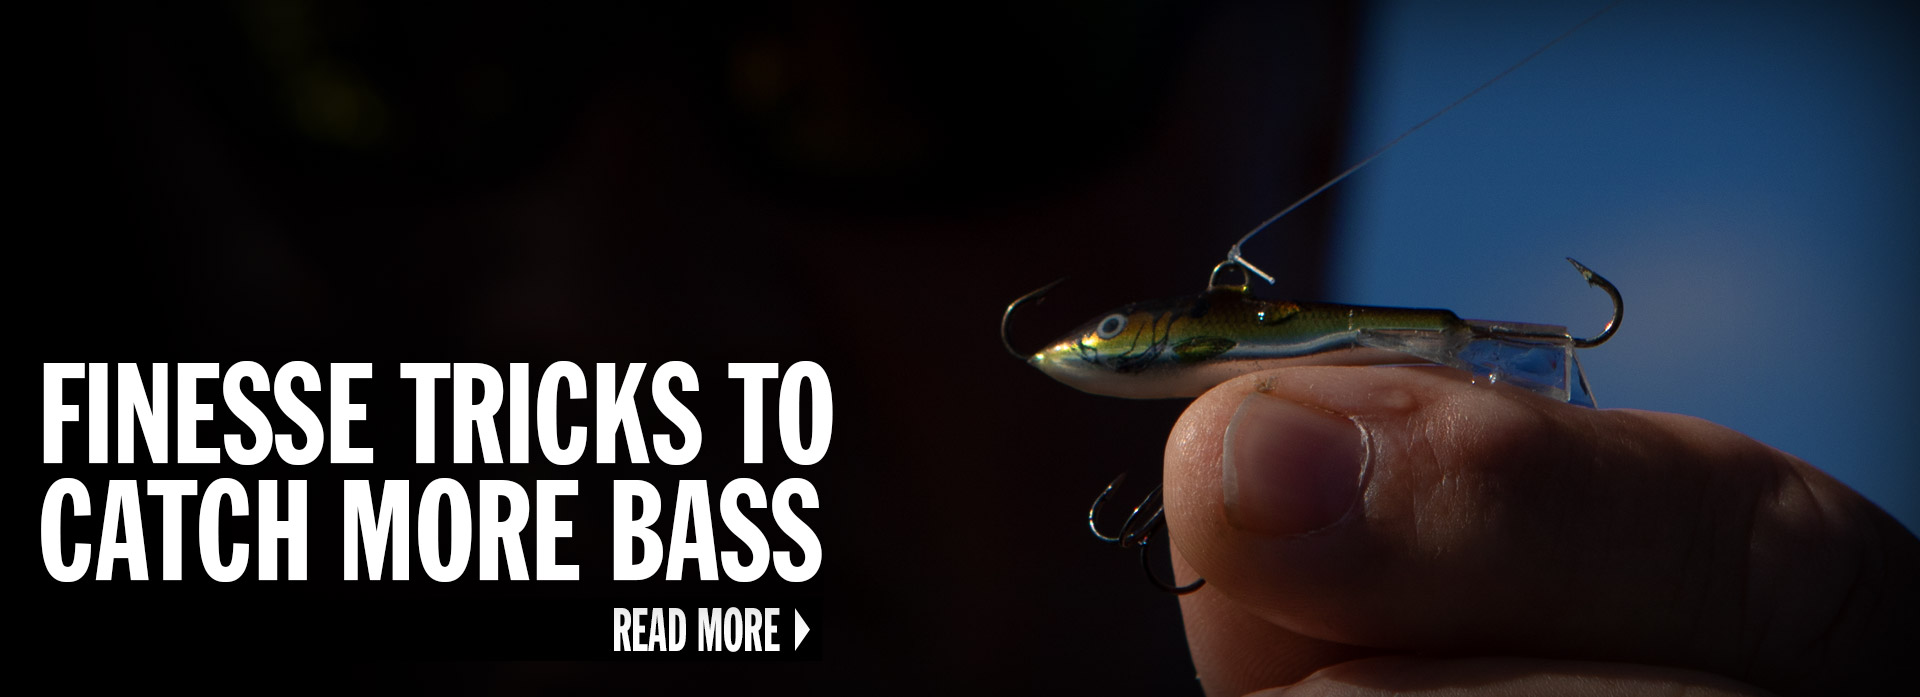 Finess Tricks to Catch More Bass